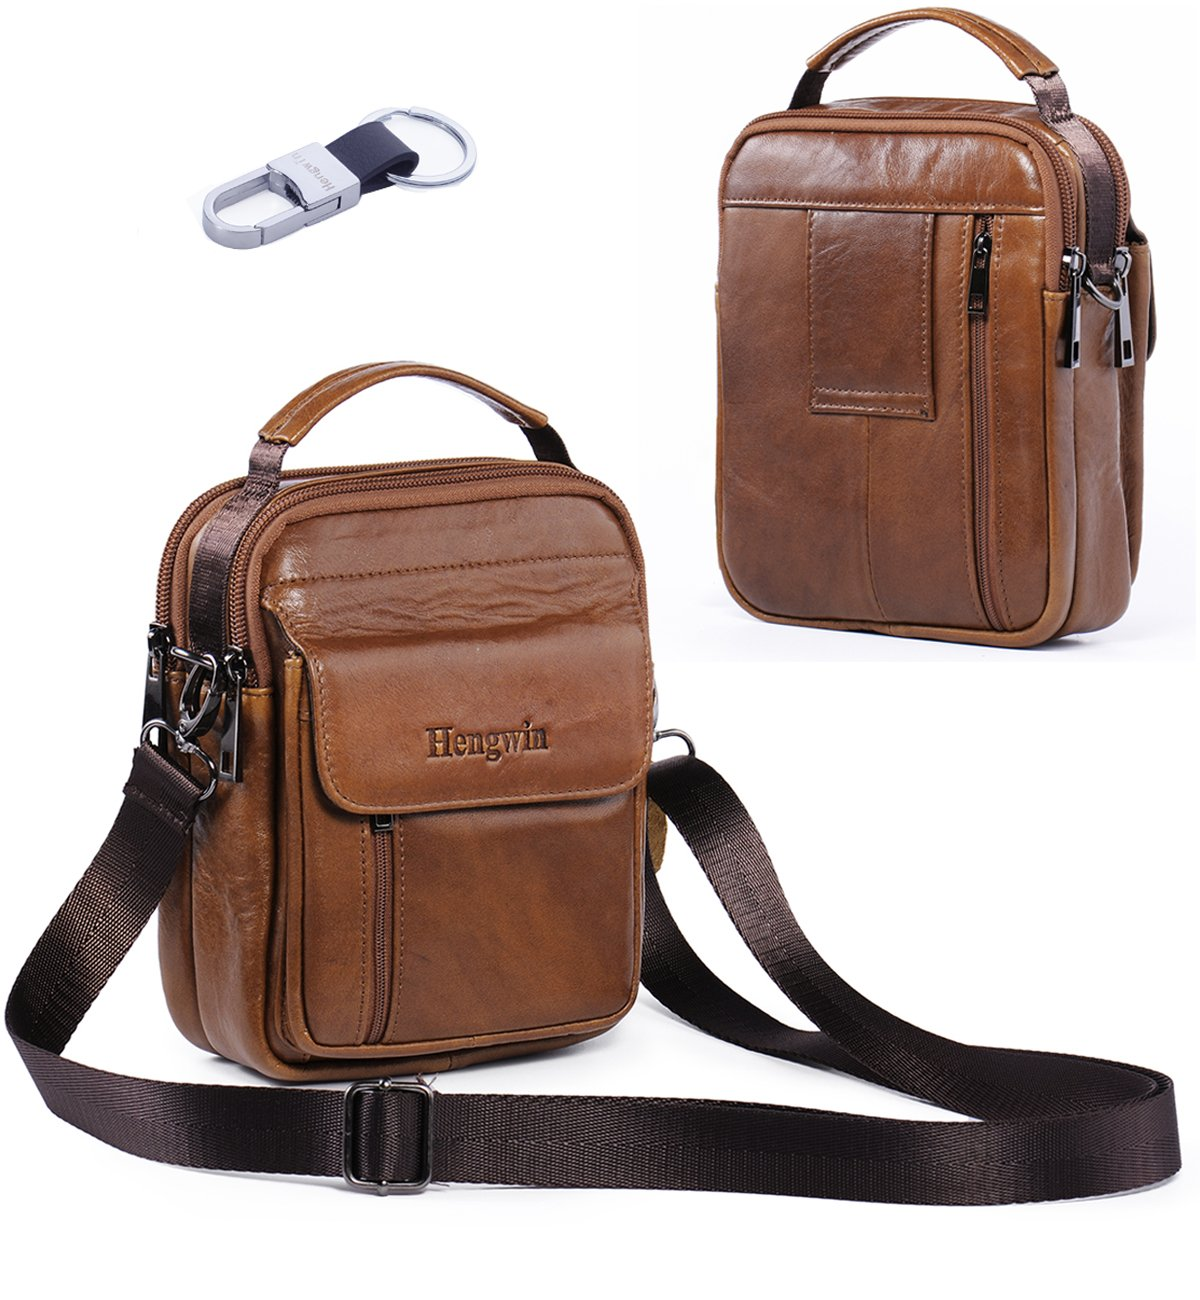 Hengwin Belt Loop Cellphone Pouch iPhone 11 Pro Max XS Max XR 8/7/6 Plus Galaxy S20 Holster Case Leather Crossbody Phone Belt Bag with Shoulder Strap Travel Men Purse Handbag Messenger Bags +Keychain